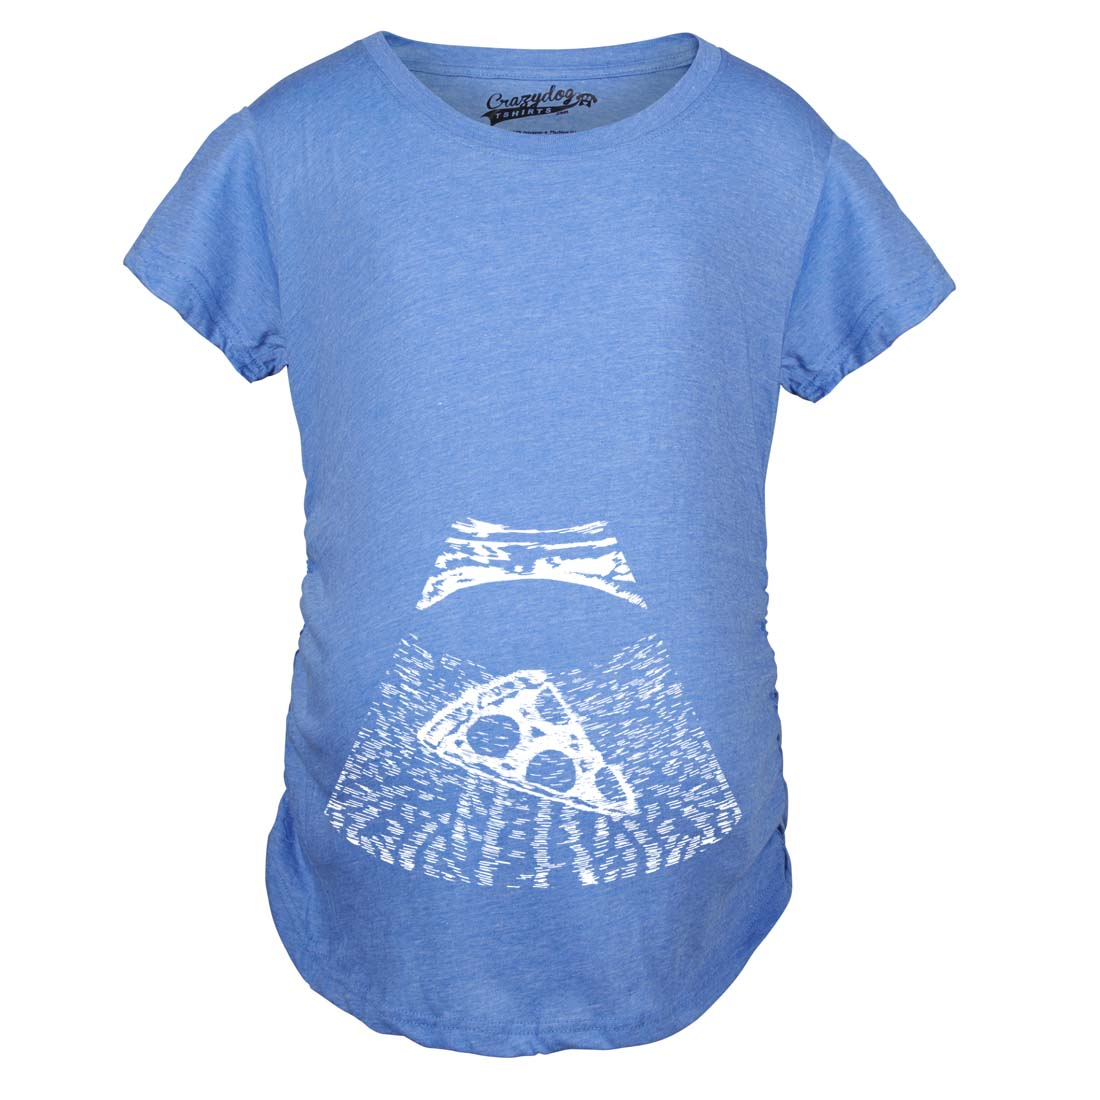 Shop for Maternity Tops & T-Shirts in Maternity. Buy products such as Maternity Side Cinch Tunic - Available in Plus Sizes at Walmart and save.